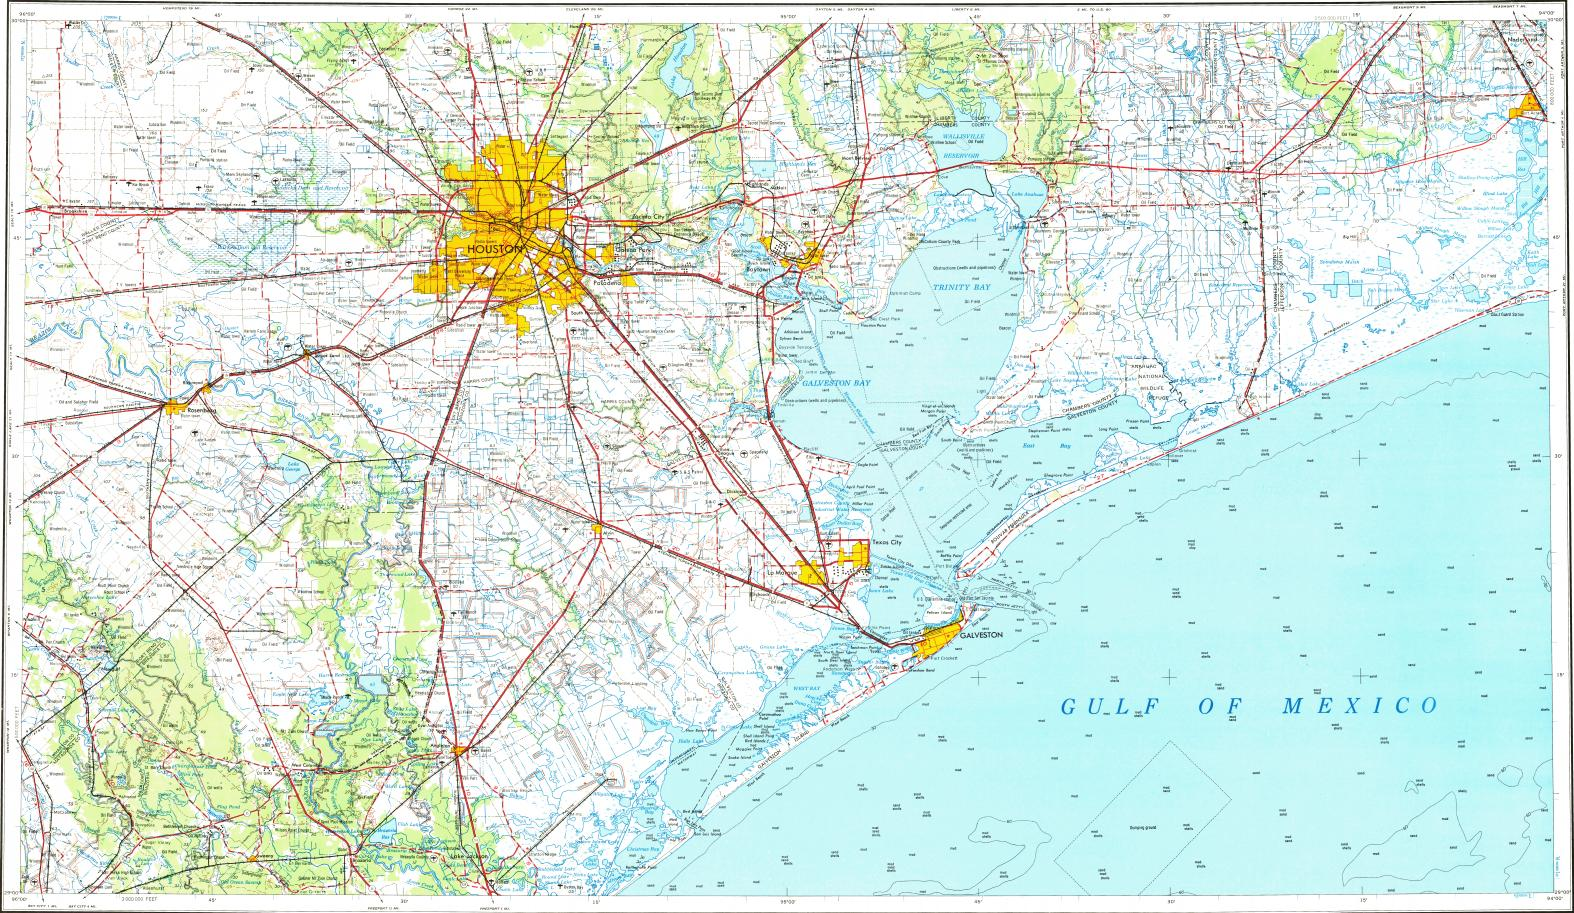 Download topographic map in area of Houston, Galveston, Pasadena